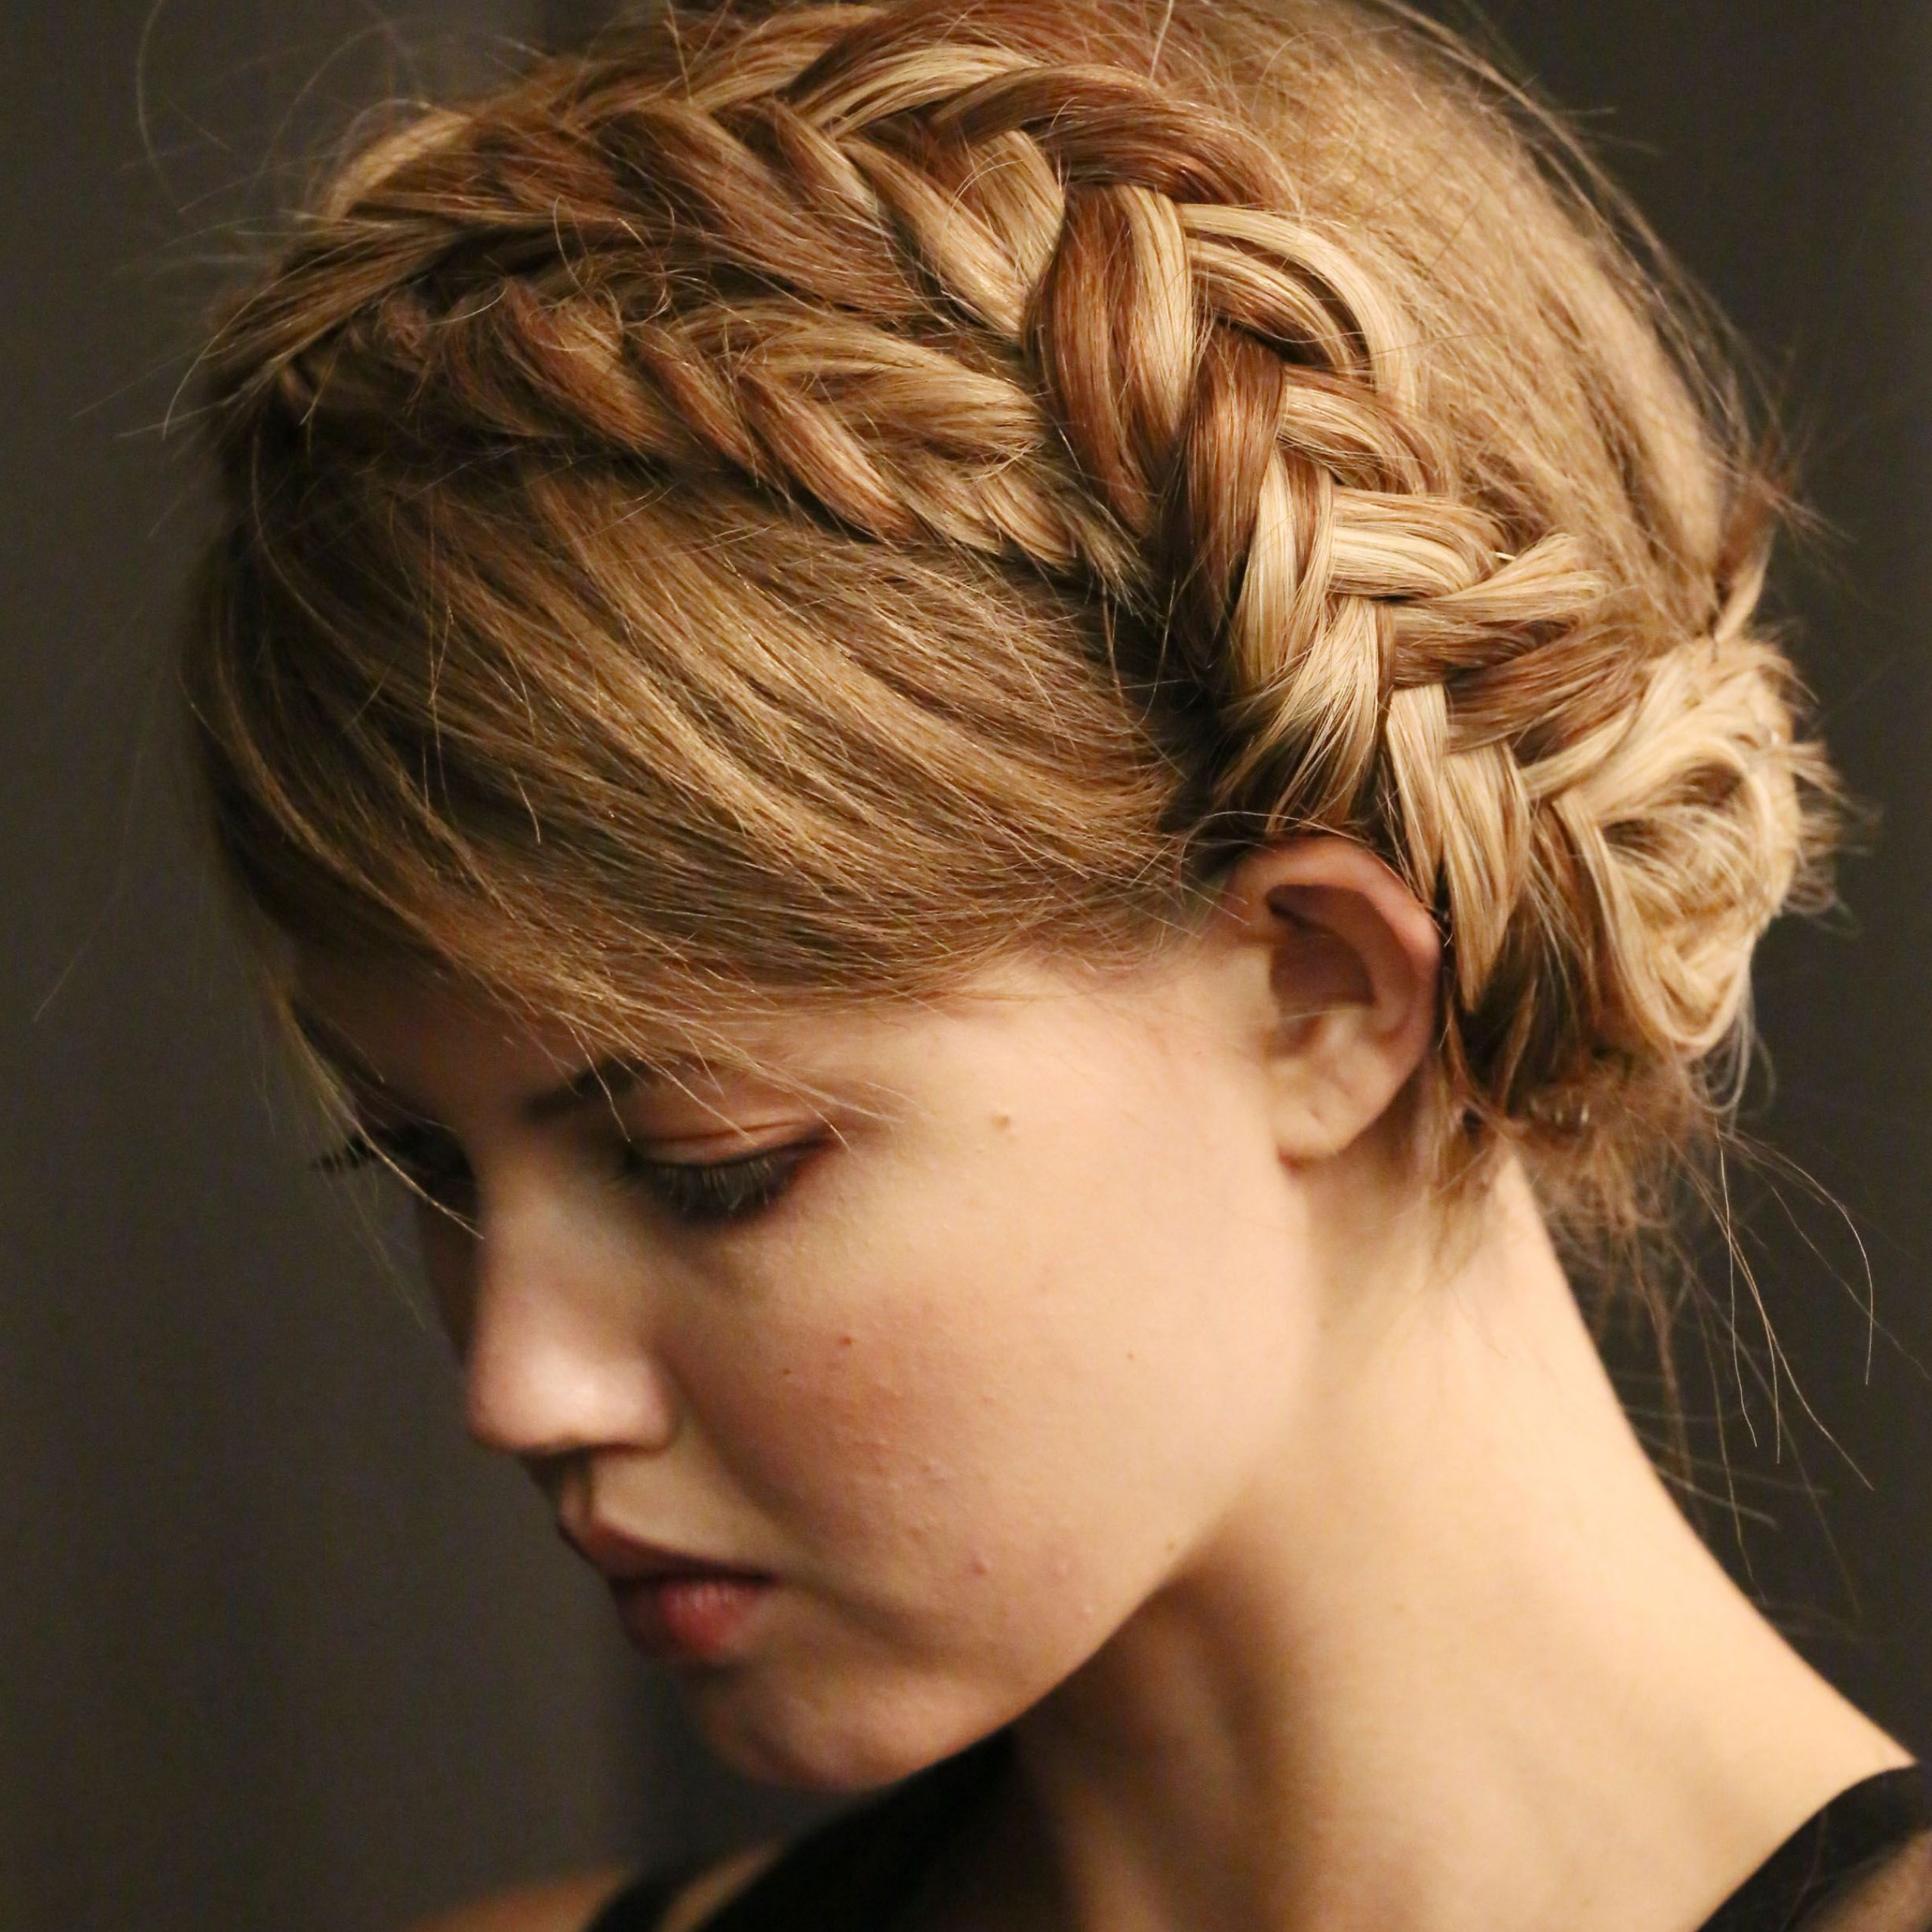 Most Up To Date Halo Braid Hairstyles With Bangs With Crown Braid With Bangs (View 2 of 20)